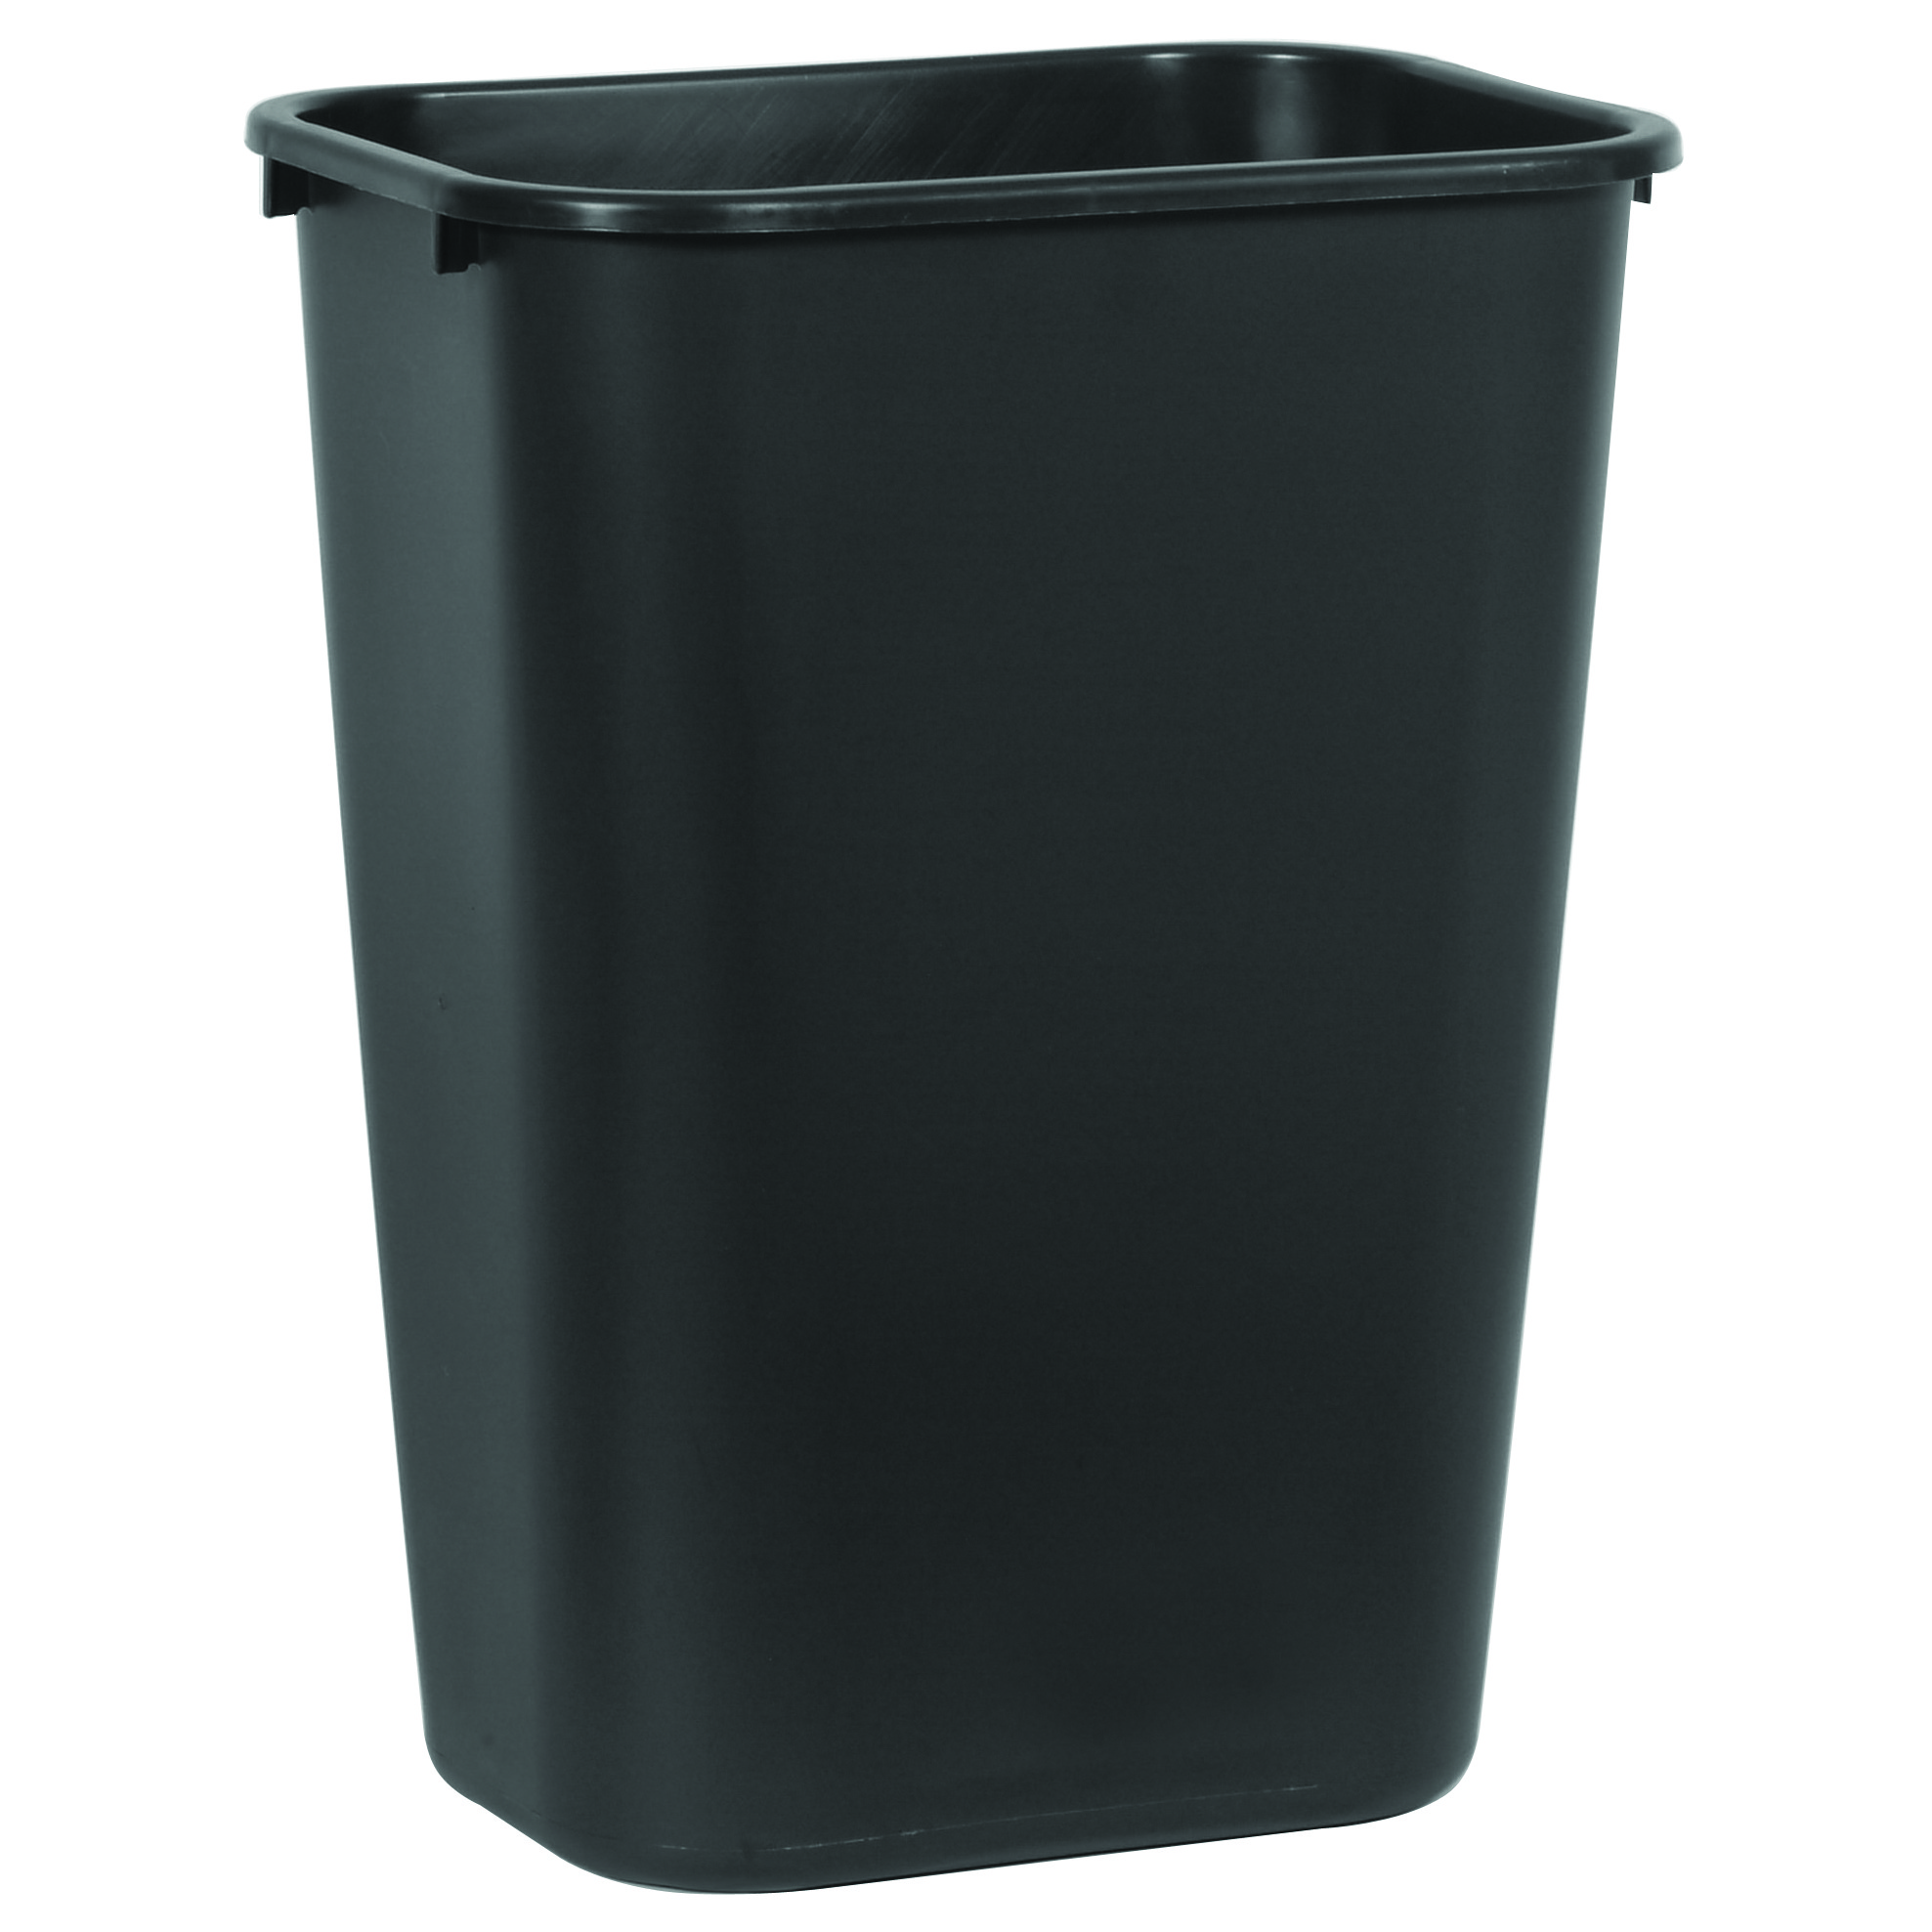 Waste Basket deskside wastebasket | desk trash can | plastic waste bin | trash